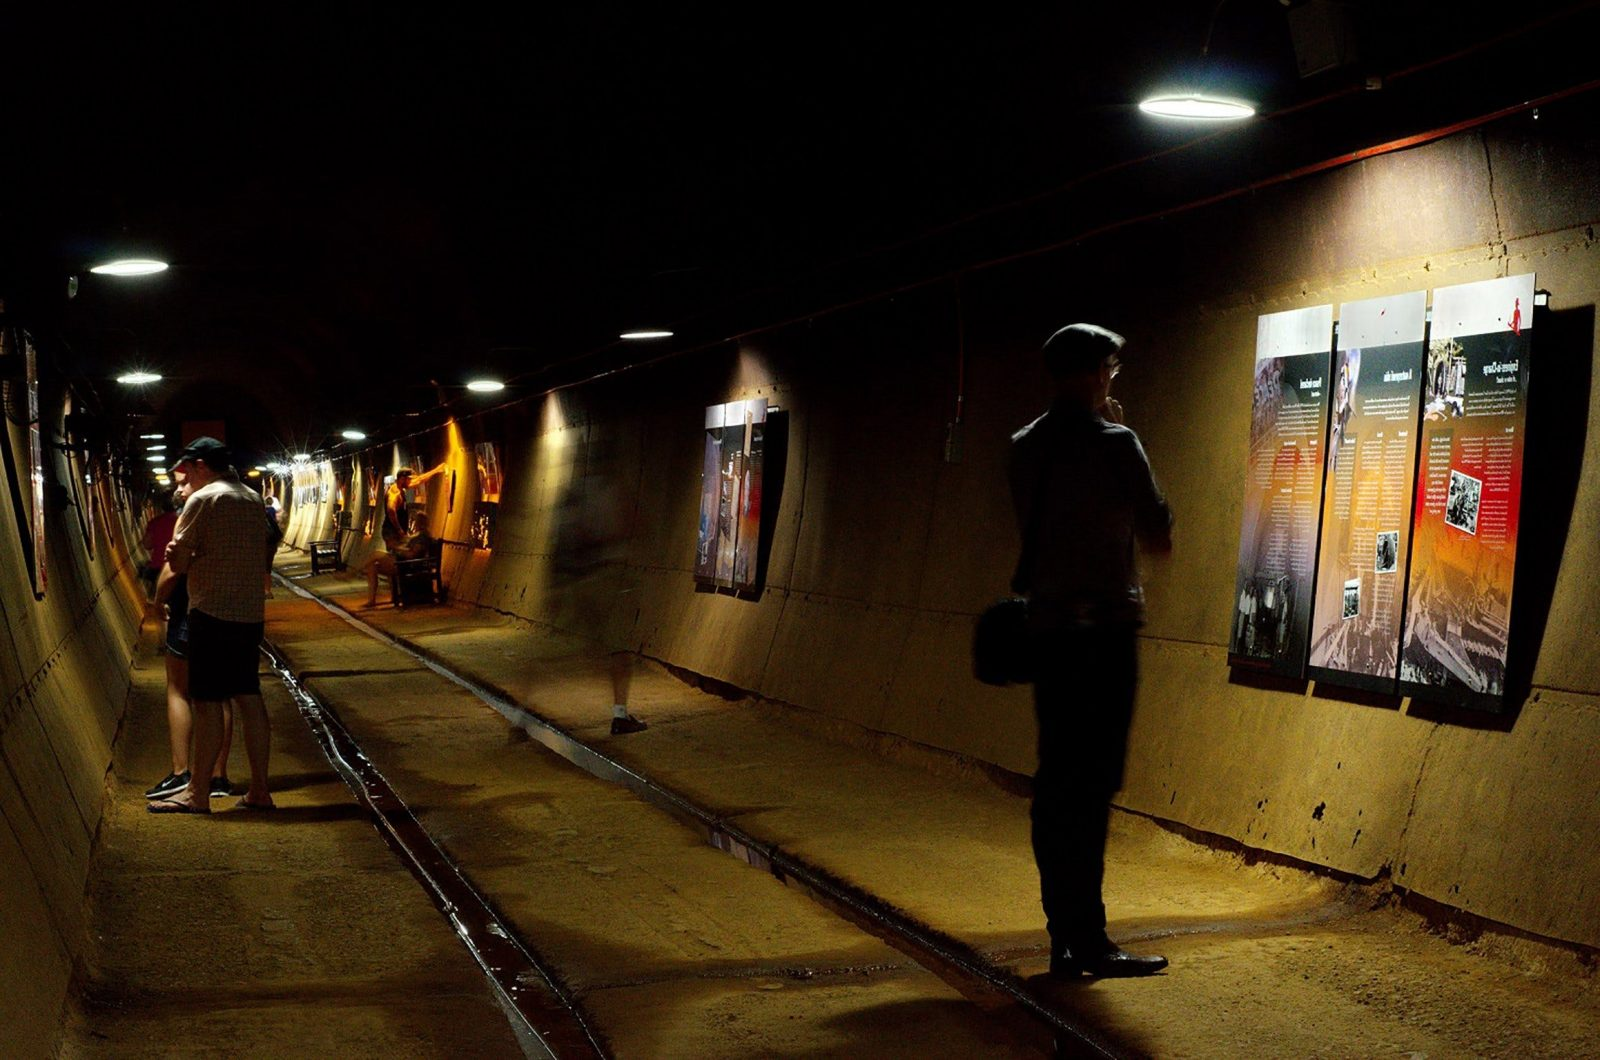 Visit the WWII Oil Storage Tunnels as part of your walking tour